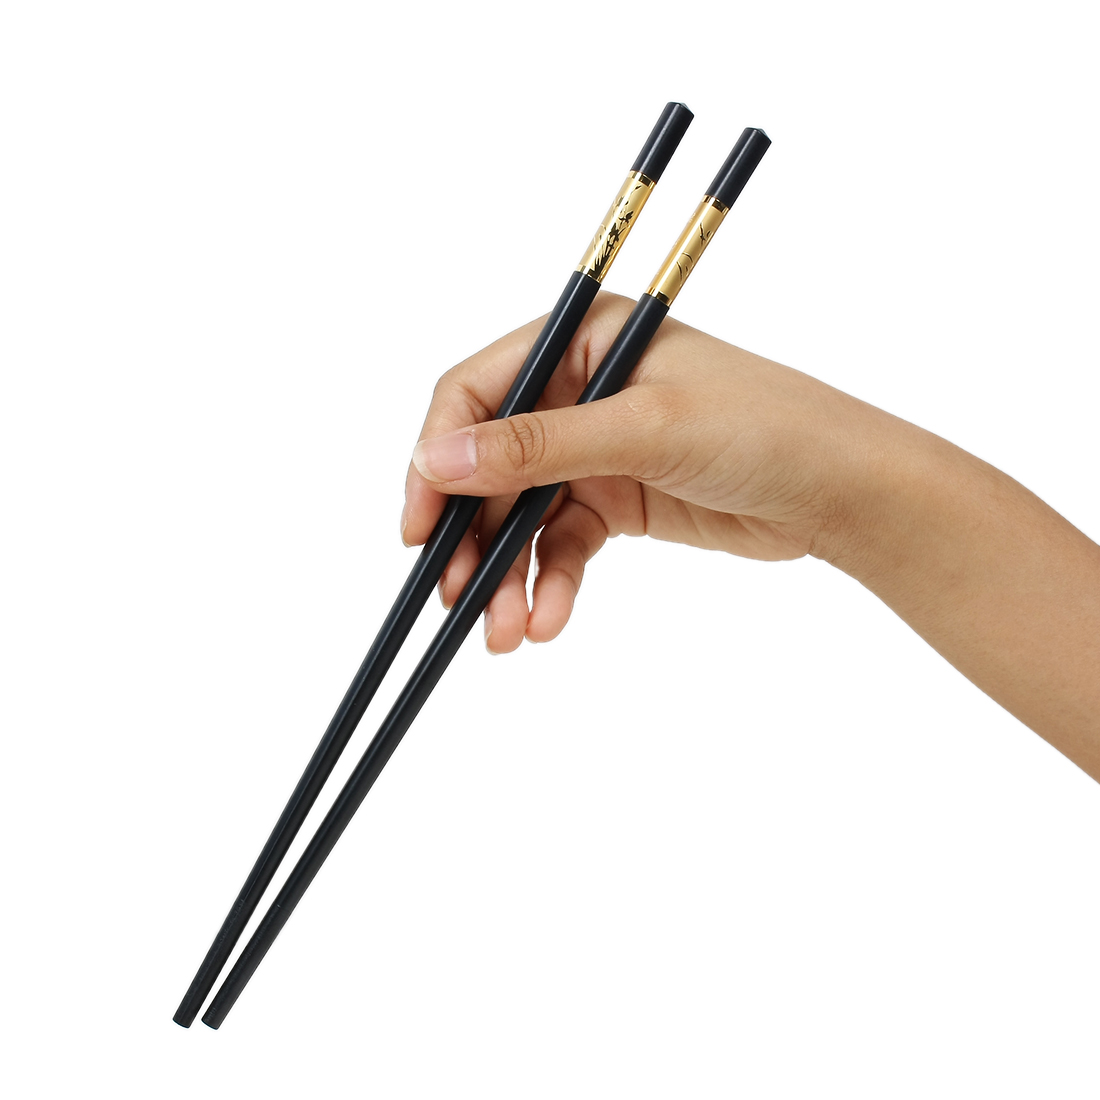 Casa-J Plastic Flower Printed Chinese Chopsticks Pair Black Gold Tone